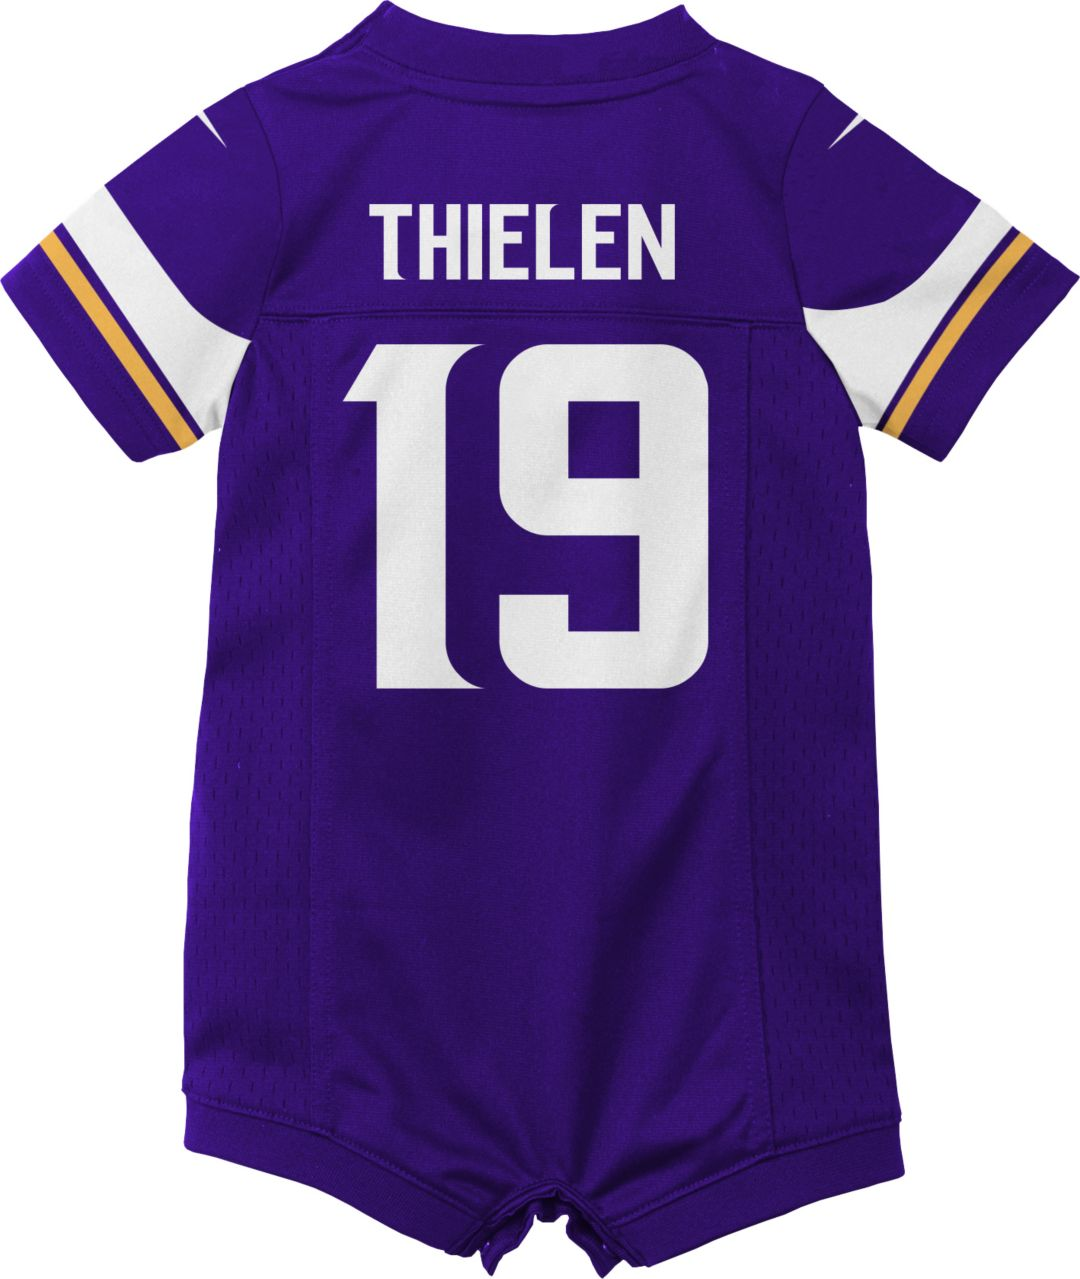 reputable site e1683 9cad0 Nike Infant Minnesota Vikings Adam Thielen #19 Romper Jersey